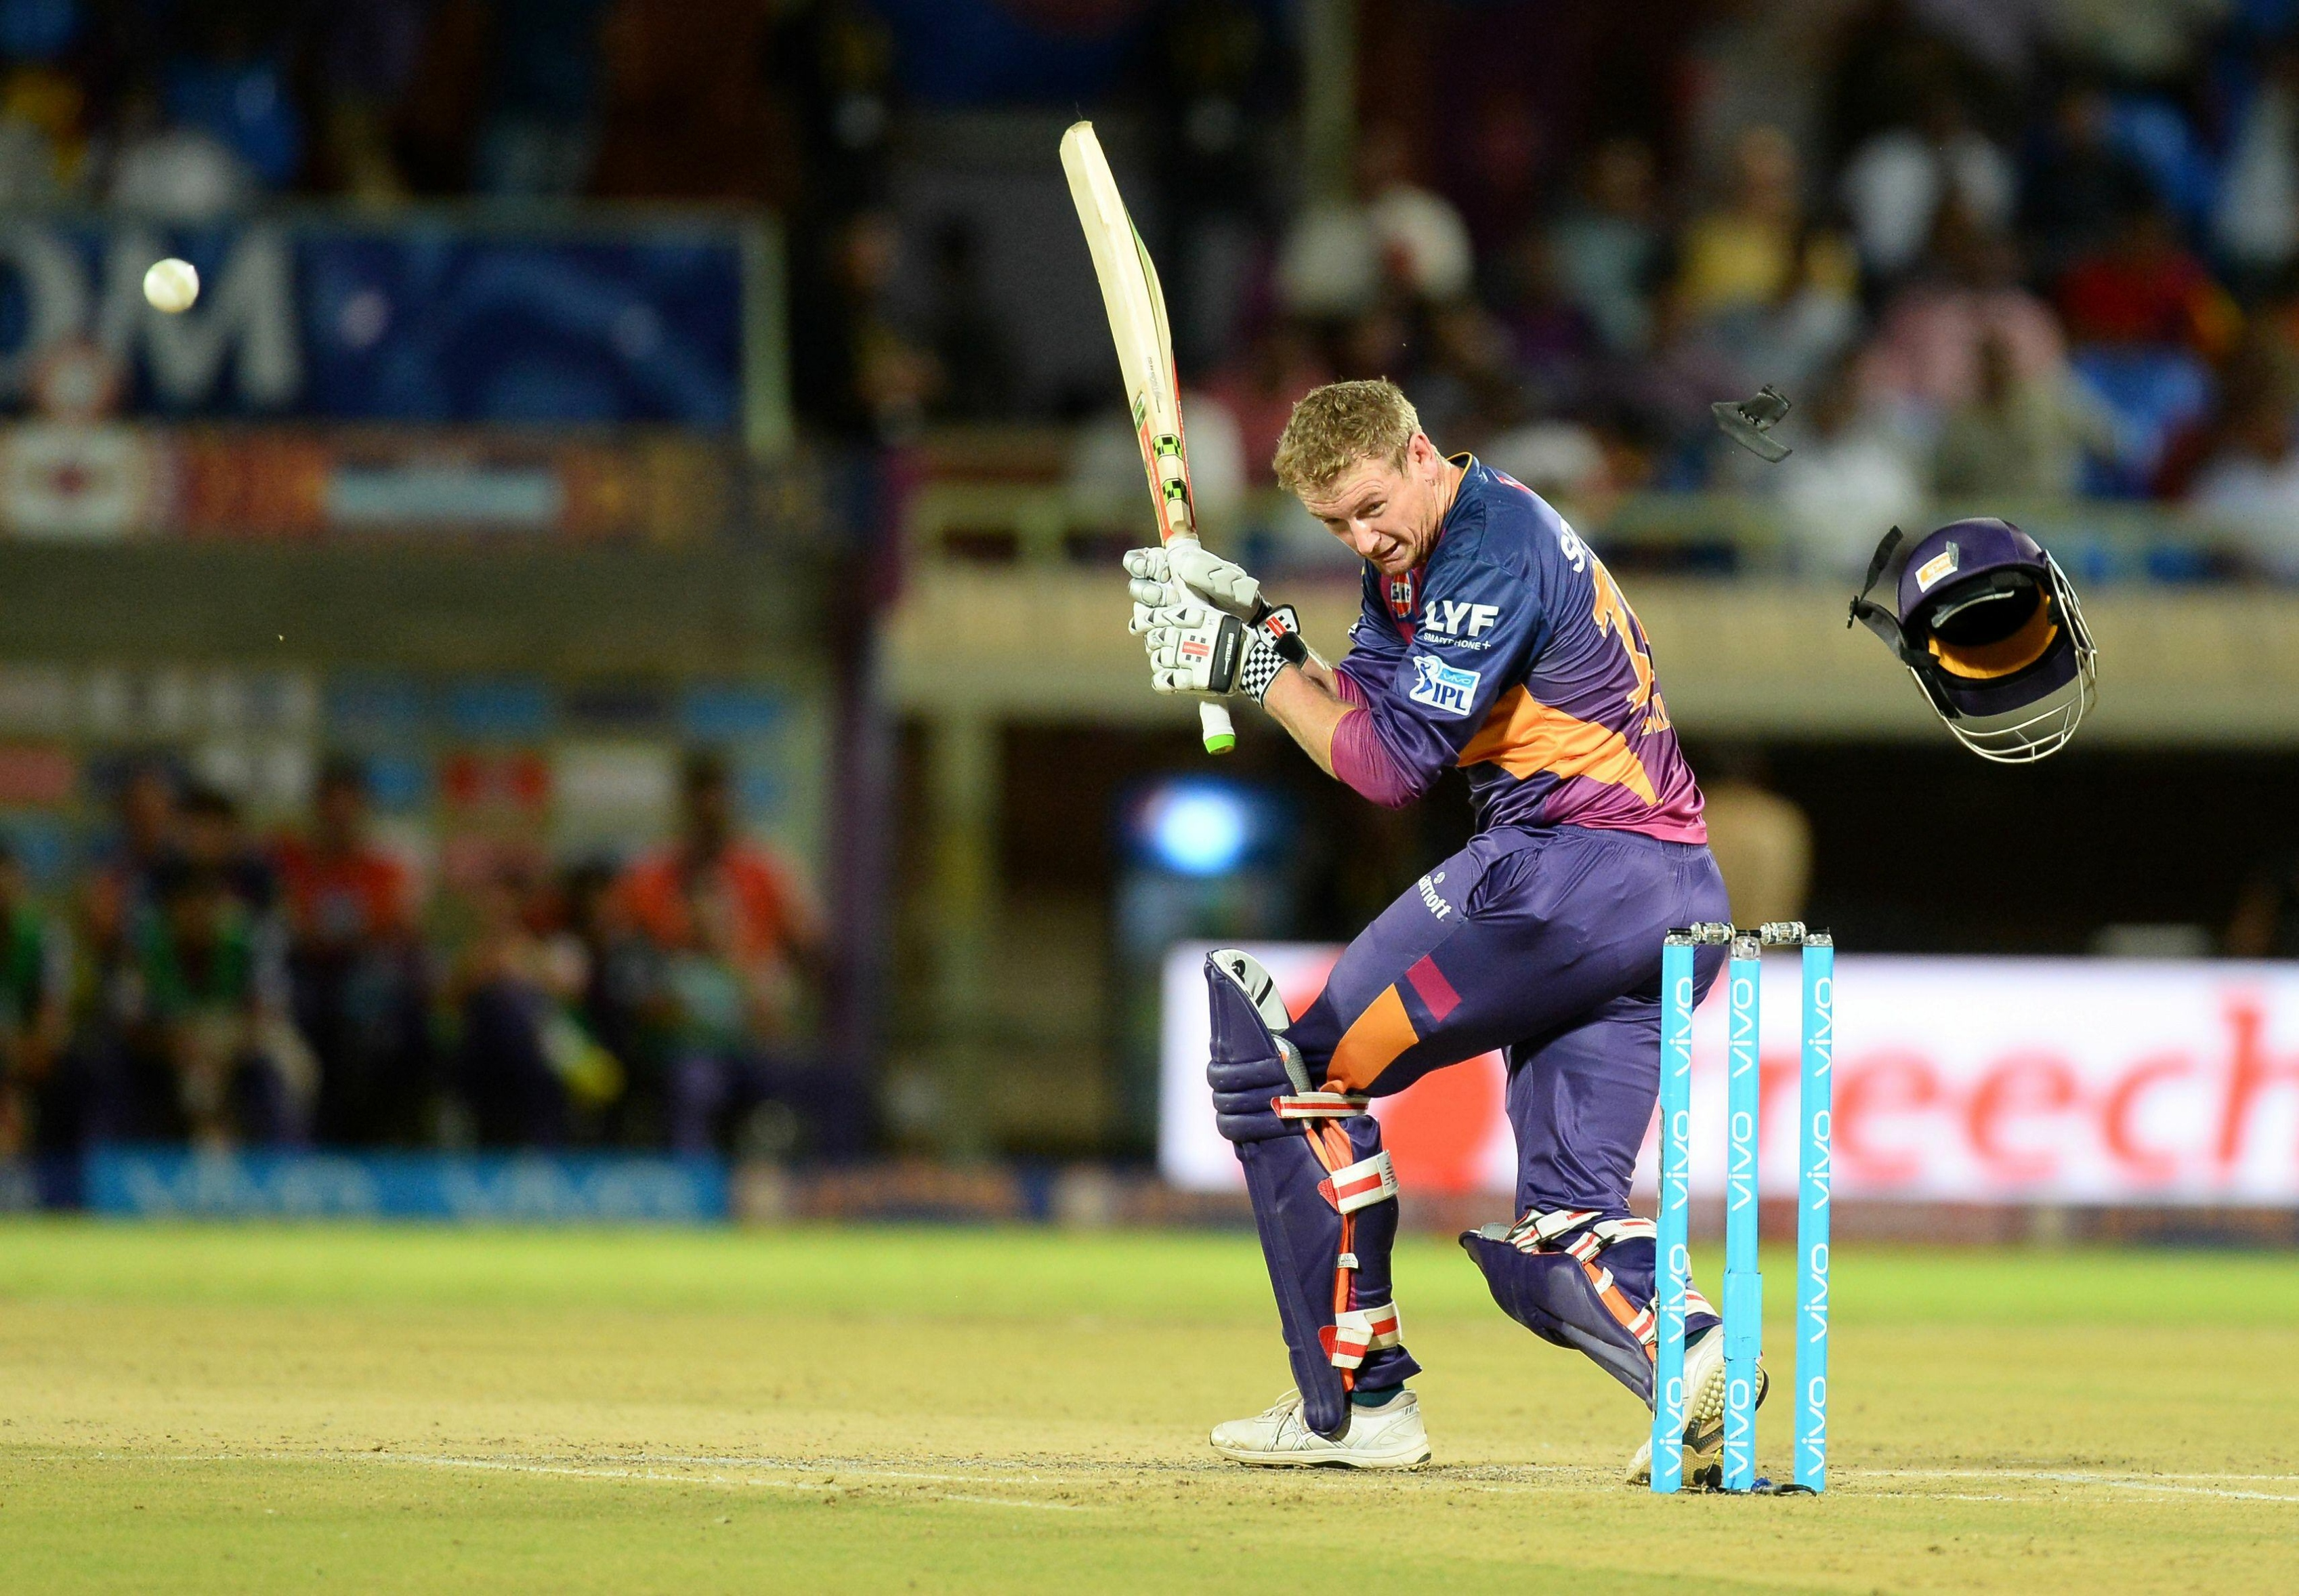 The helmet of rising Pune Supergiants batsman George Bailey  falls down after it was hit by a ball during the 2016 Indian Premier League (IPL) Twenty20 cricket match between Rising Pune Supergiants  and Delhi Daredevils at Dr. Y.S. Rajasekhara Reddy ACA-VDCA Cricket Stadium in Visakhapatnam on May 17, 2016. (AFP)